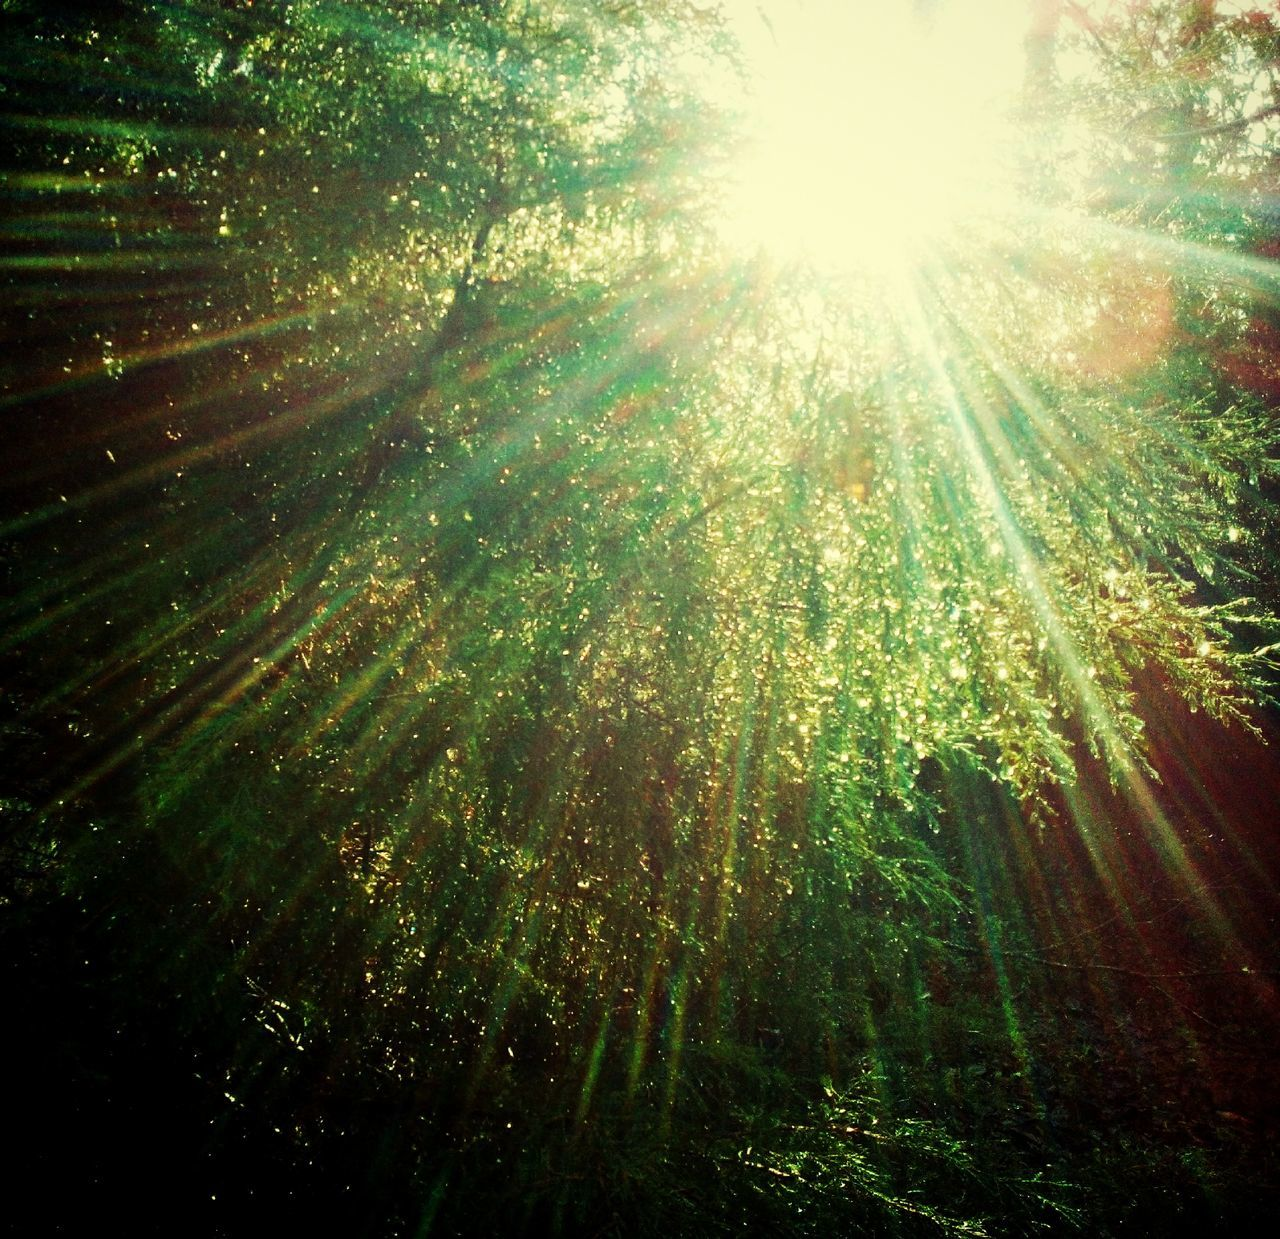 sunbeam, nature, sunlight, forest, sun, tree, growth, beauty in nature, low angle view, no people, day, outdoors, tranquility, bamboo - plant, scenics